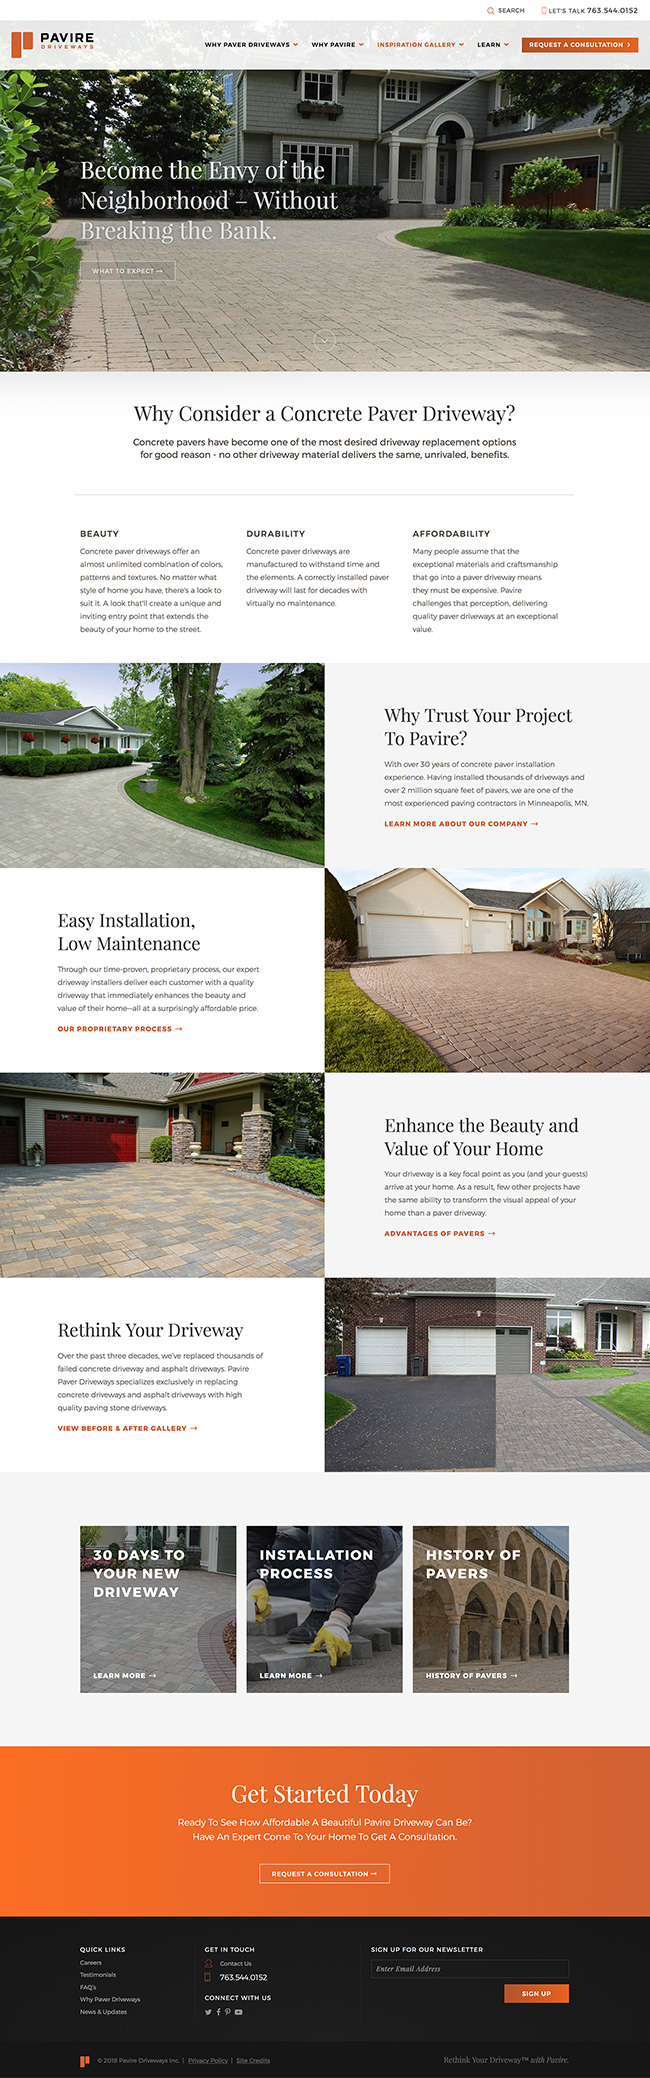 pavire-paver-driveways-by-karly-a-design_home.jpg